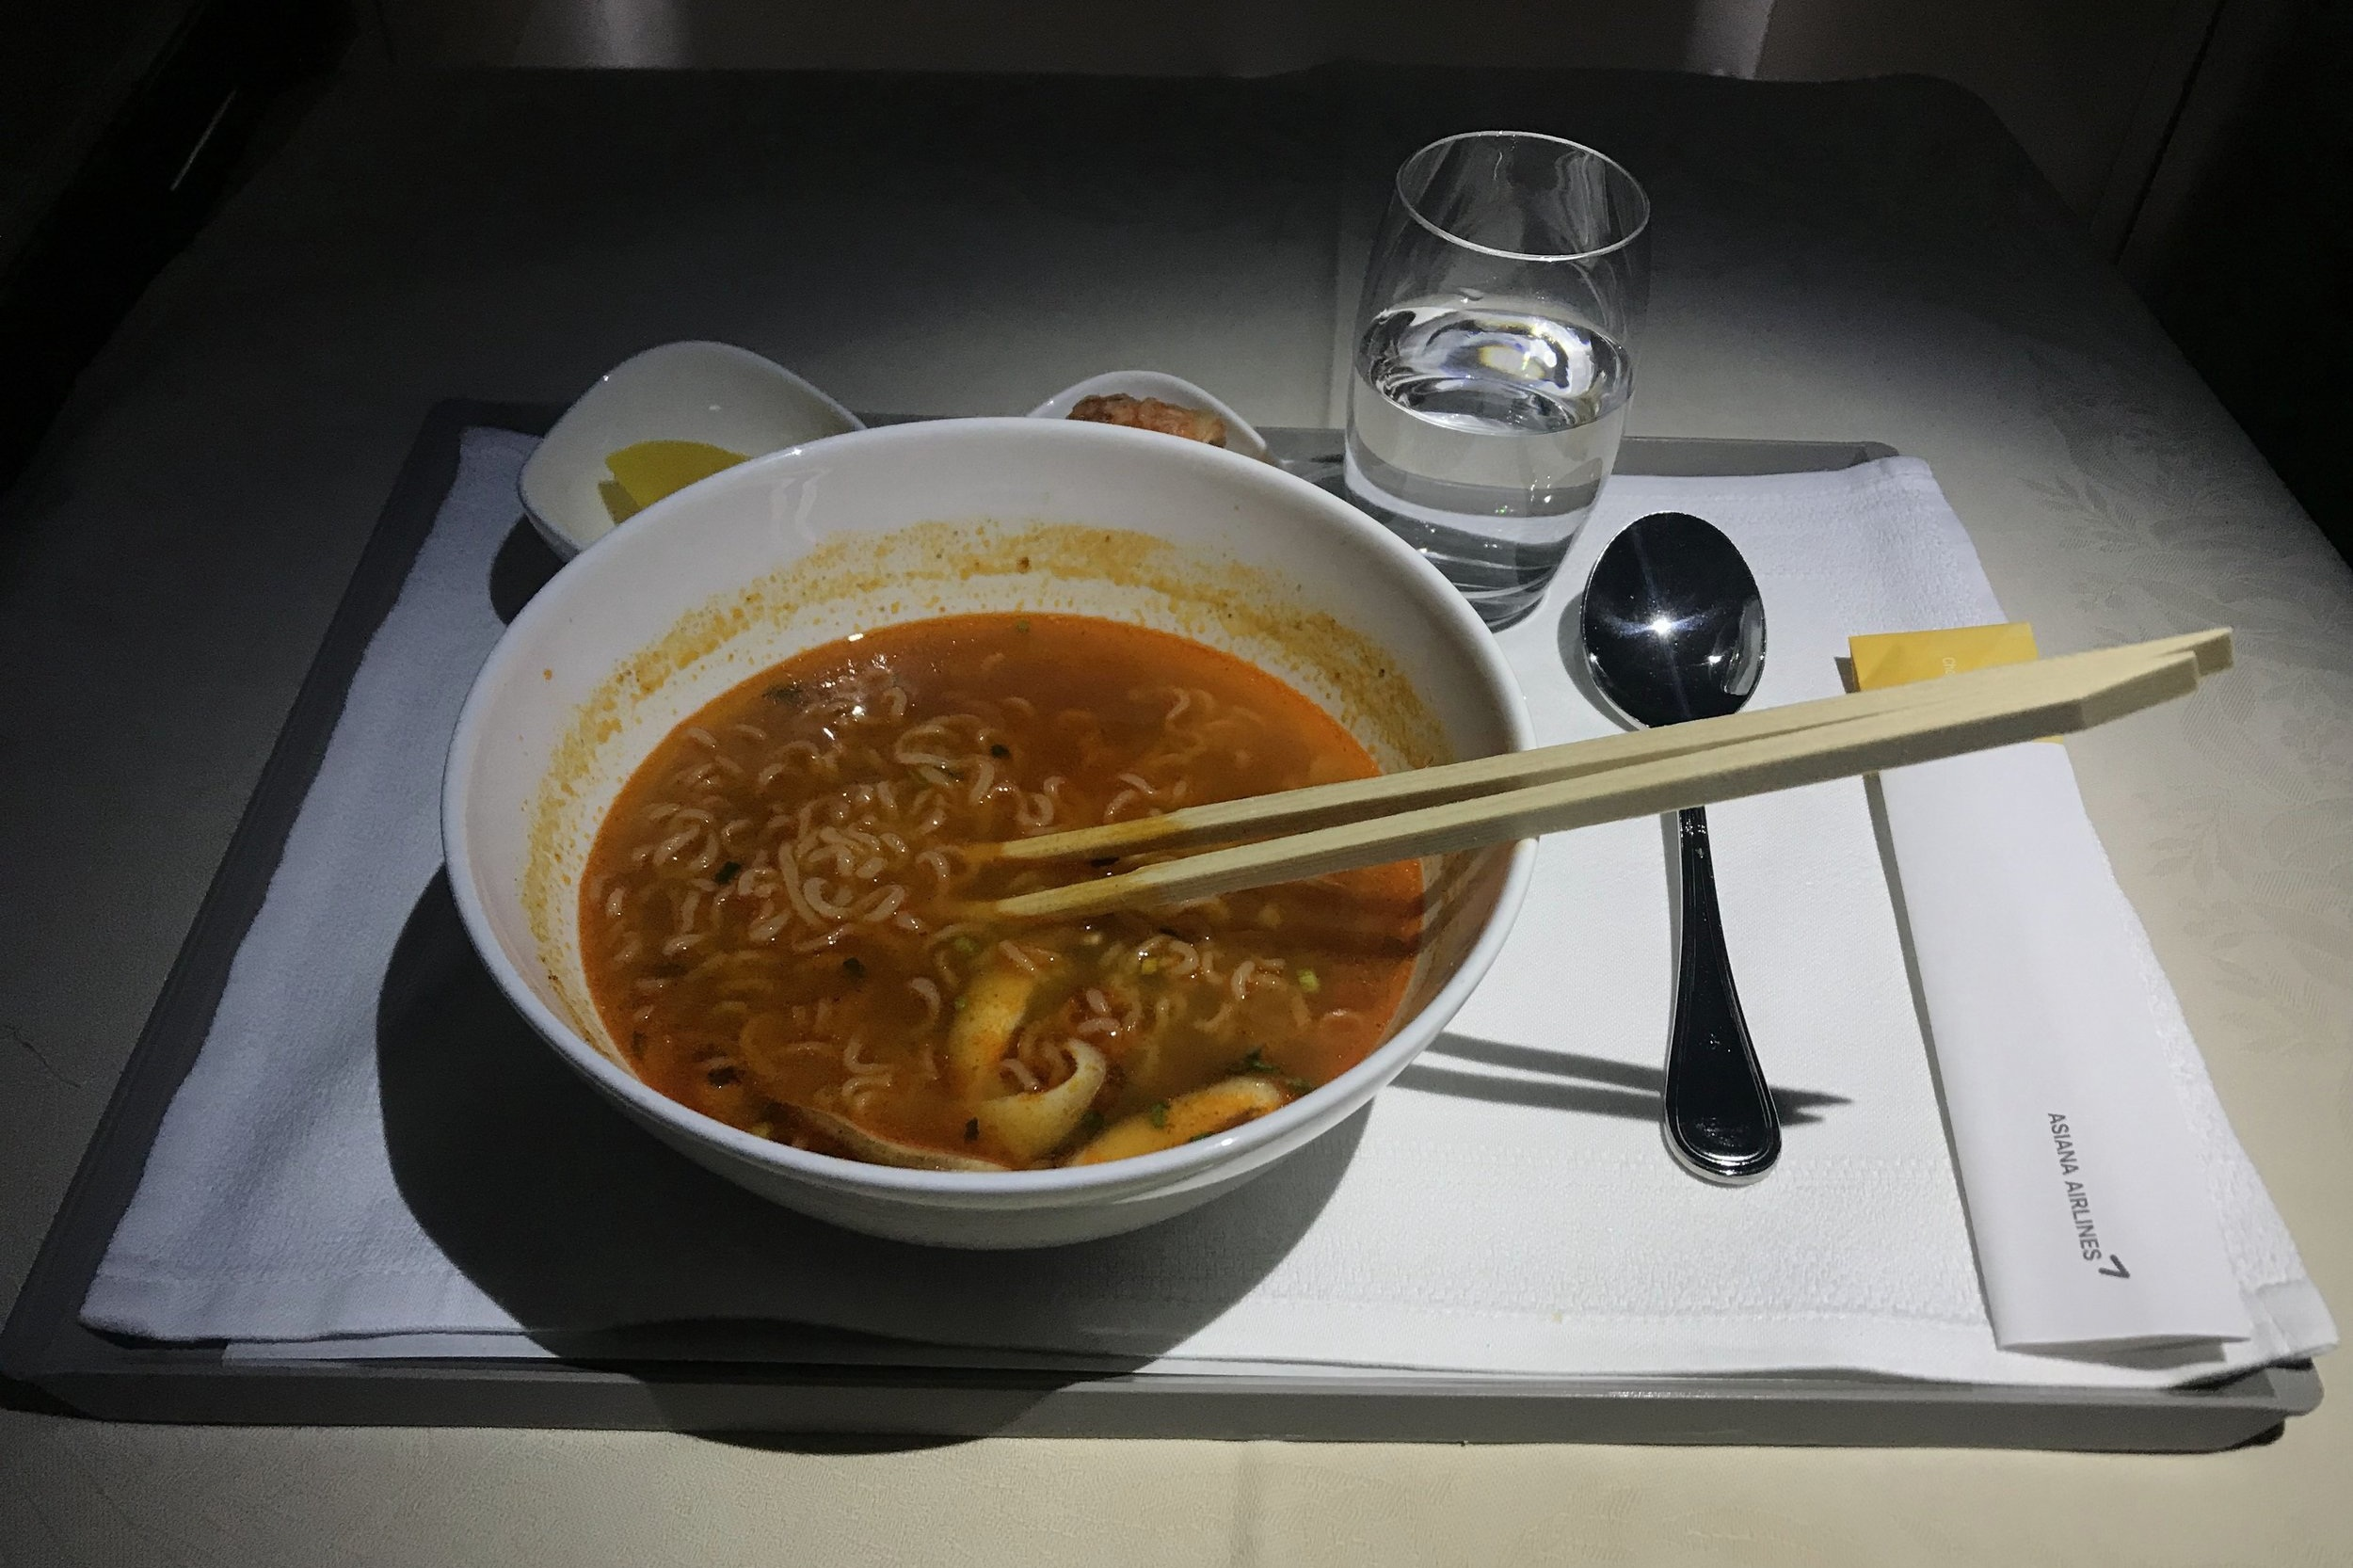 Asiana Airlines First Class – Ramen noodles